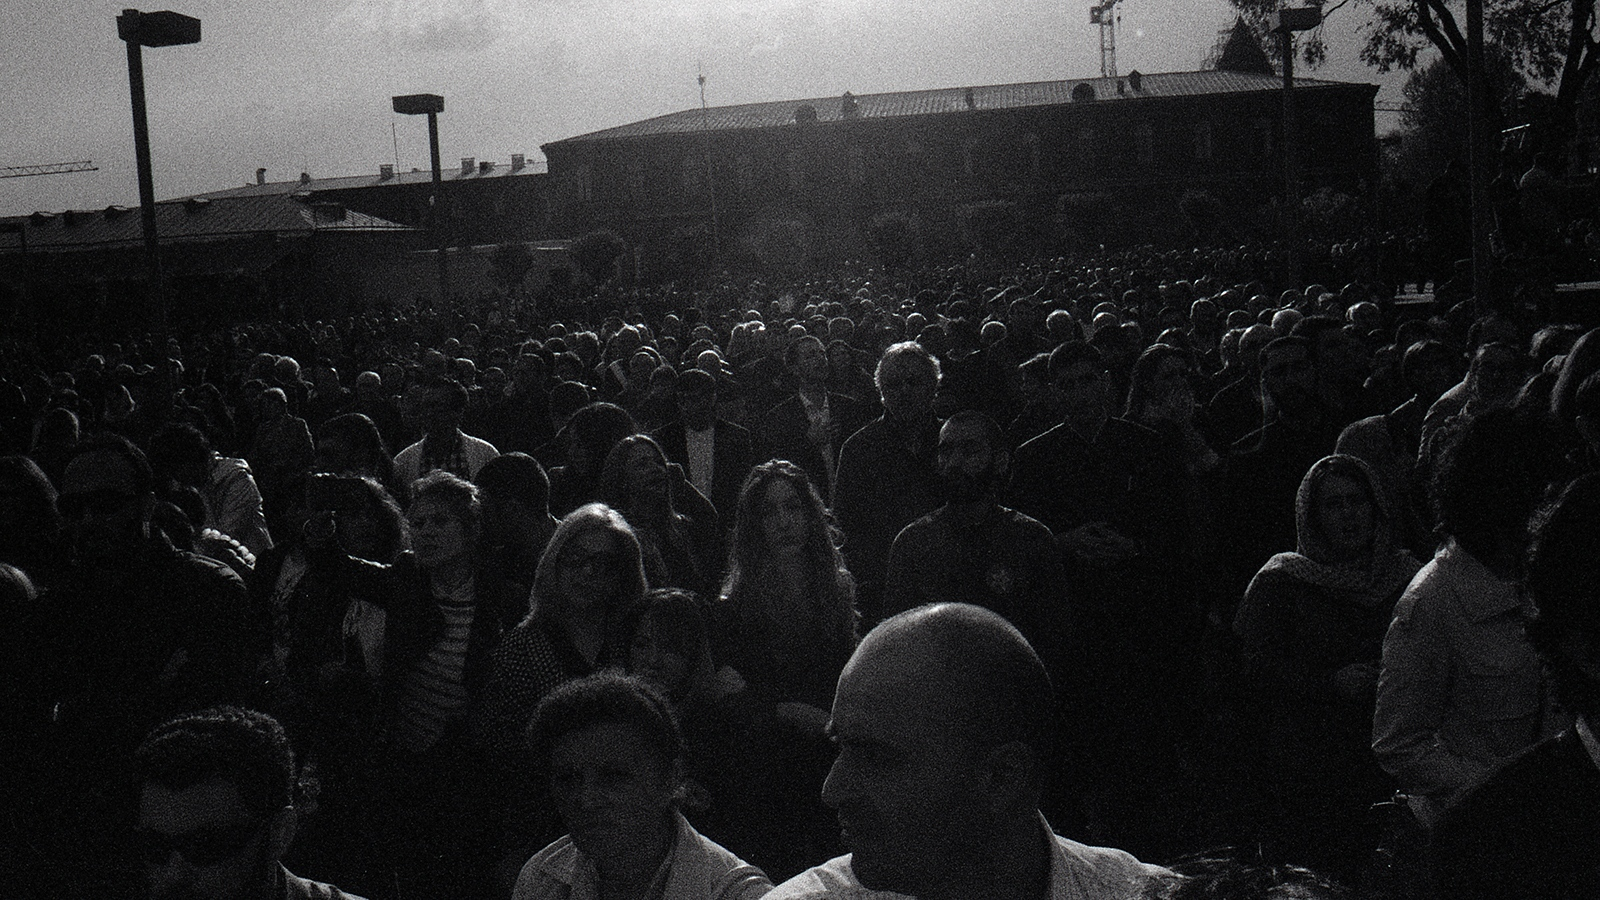 Crowd at Echmiadzin Armenian Genocide Memorial